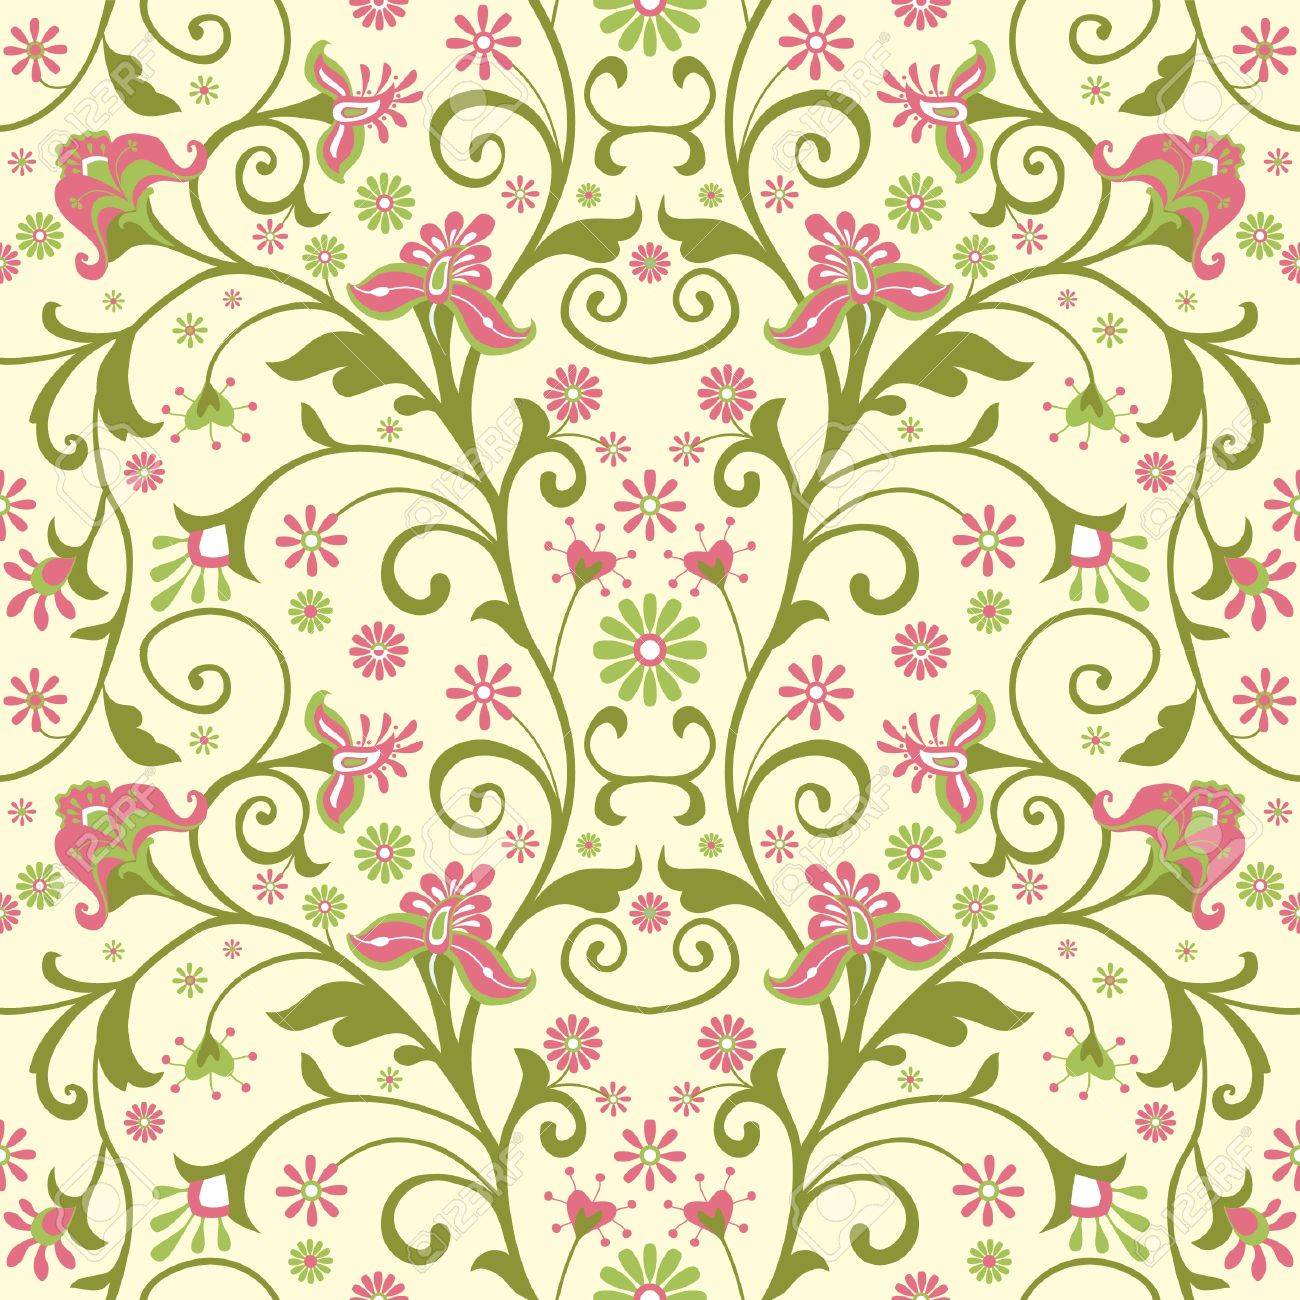 Colorful Floral Wallpaper With Decorative Flowers; Seamless Pattern ...